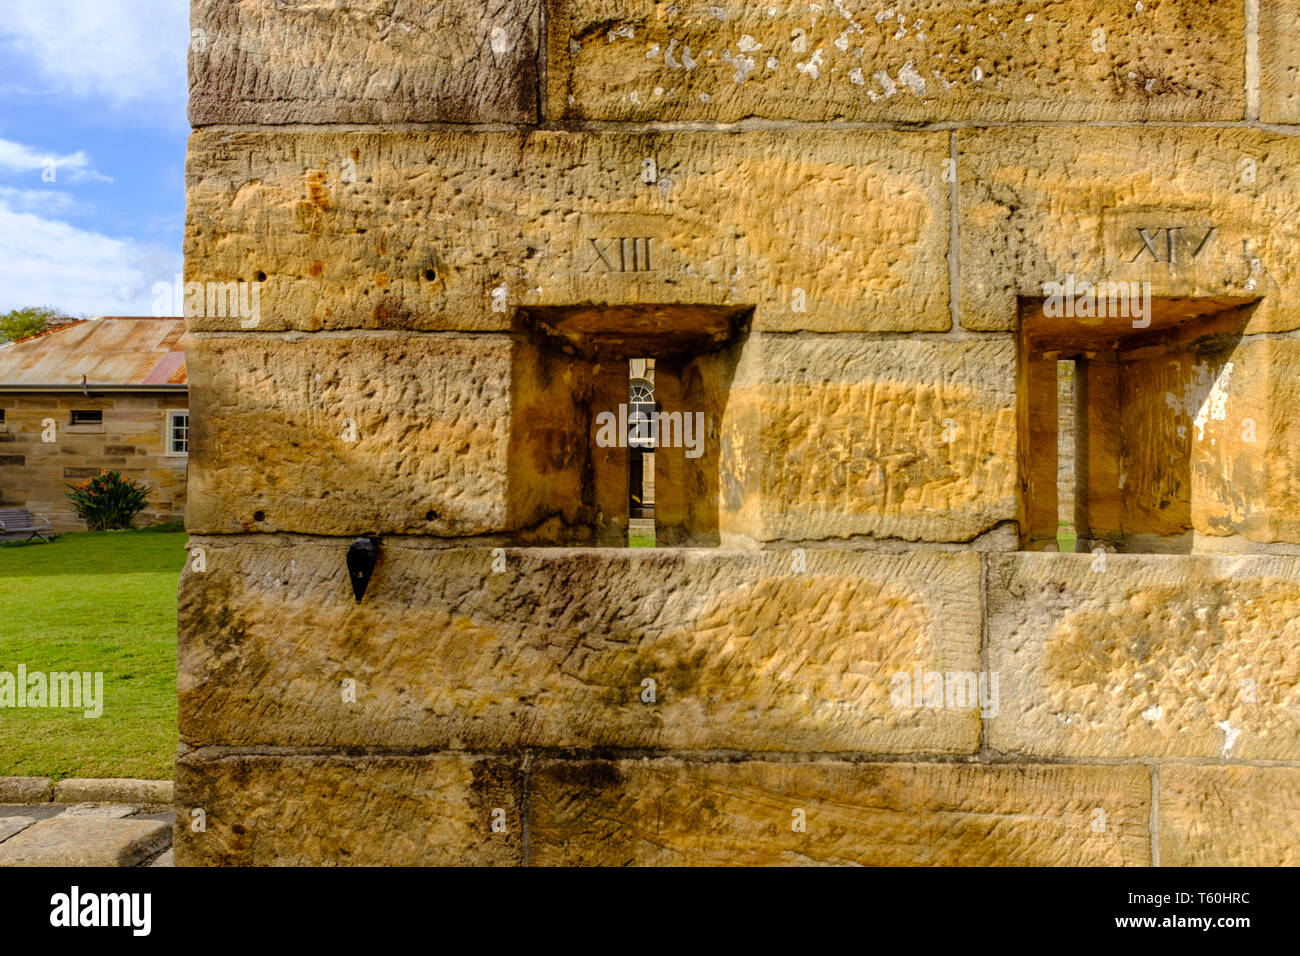 Cockatoo island Sydney, Australia, Detail of historical stone prison building built by convicts for solitary confinement of prisoners in 1800s - Stock Image